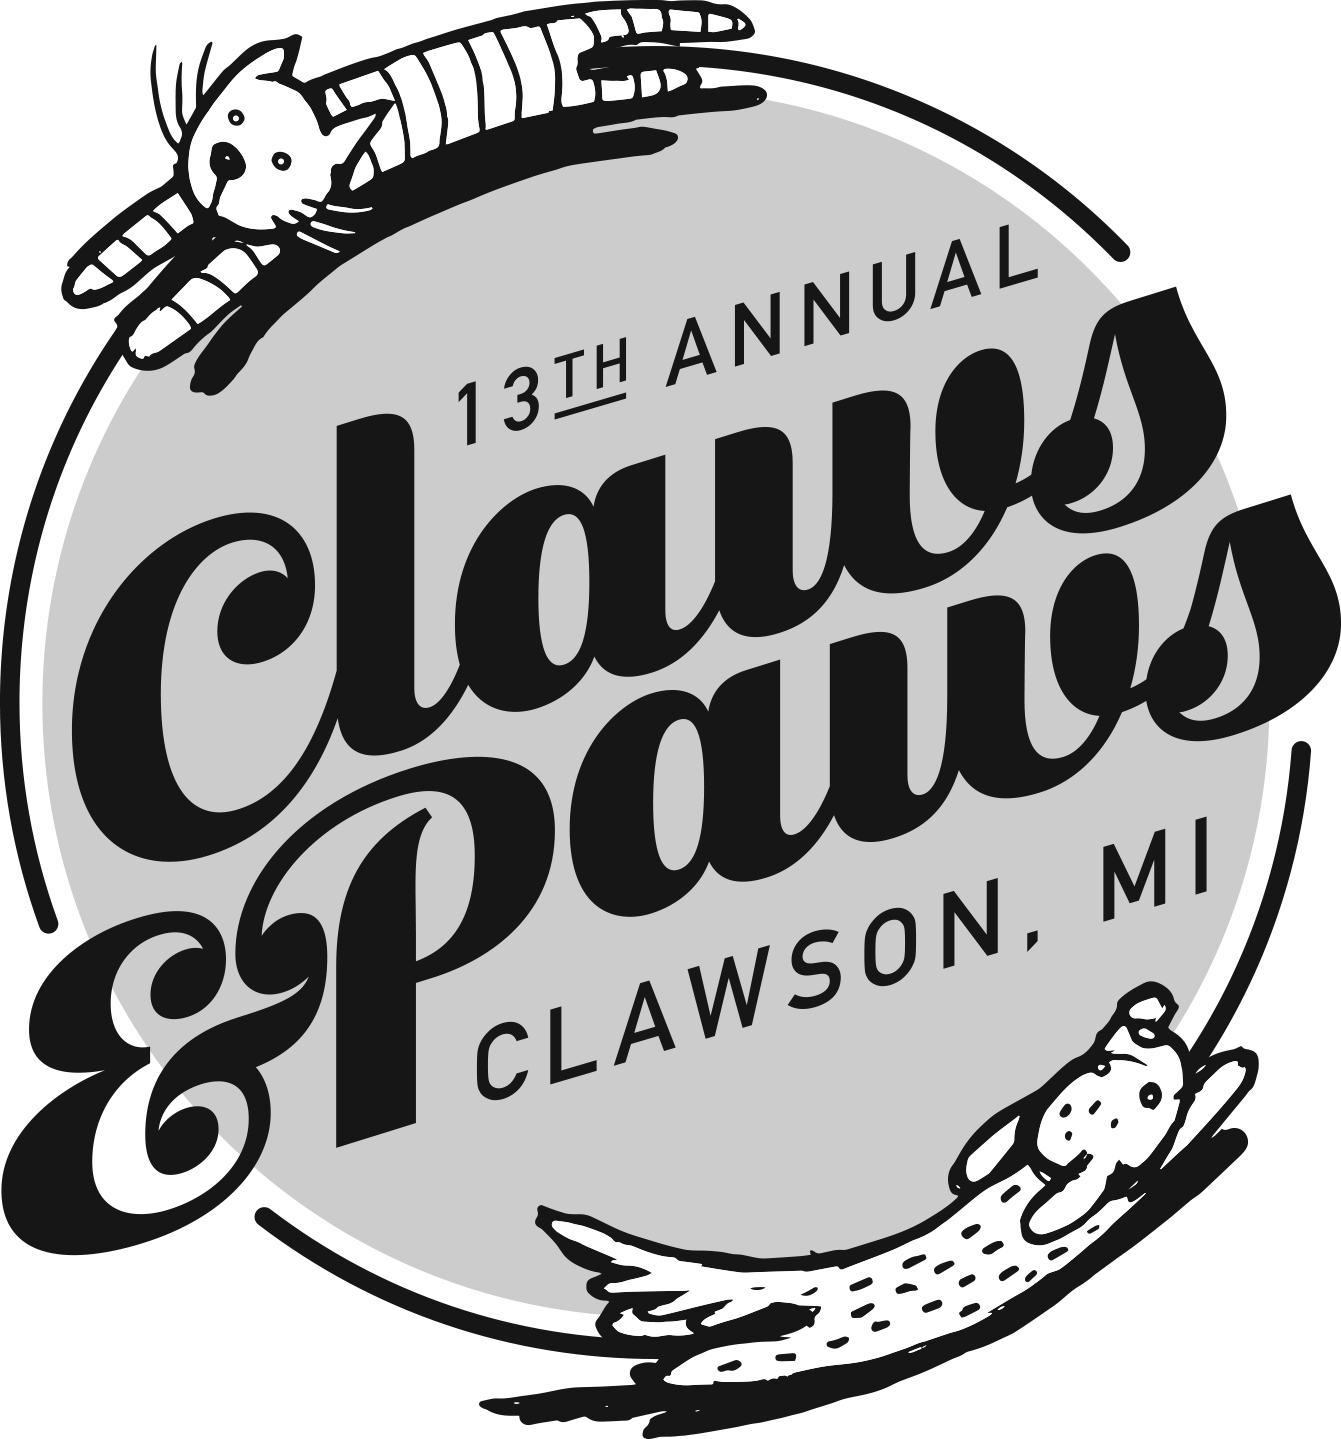 claws_paws_13TH_color